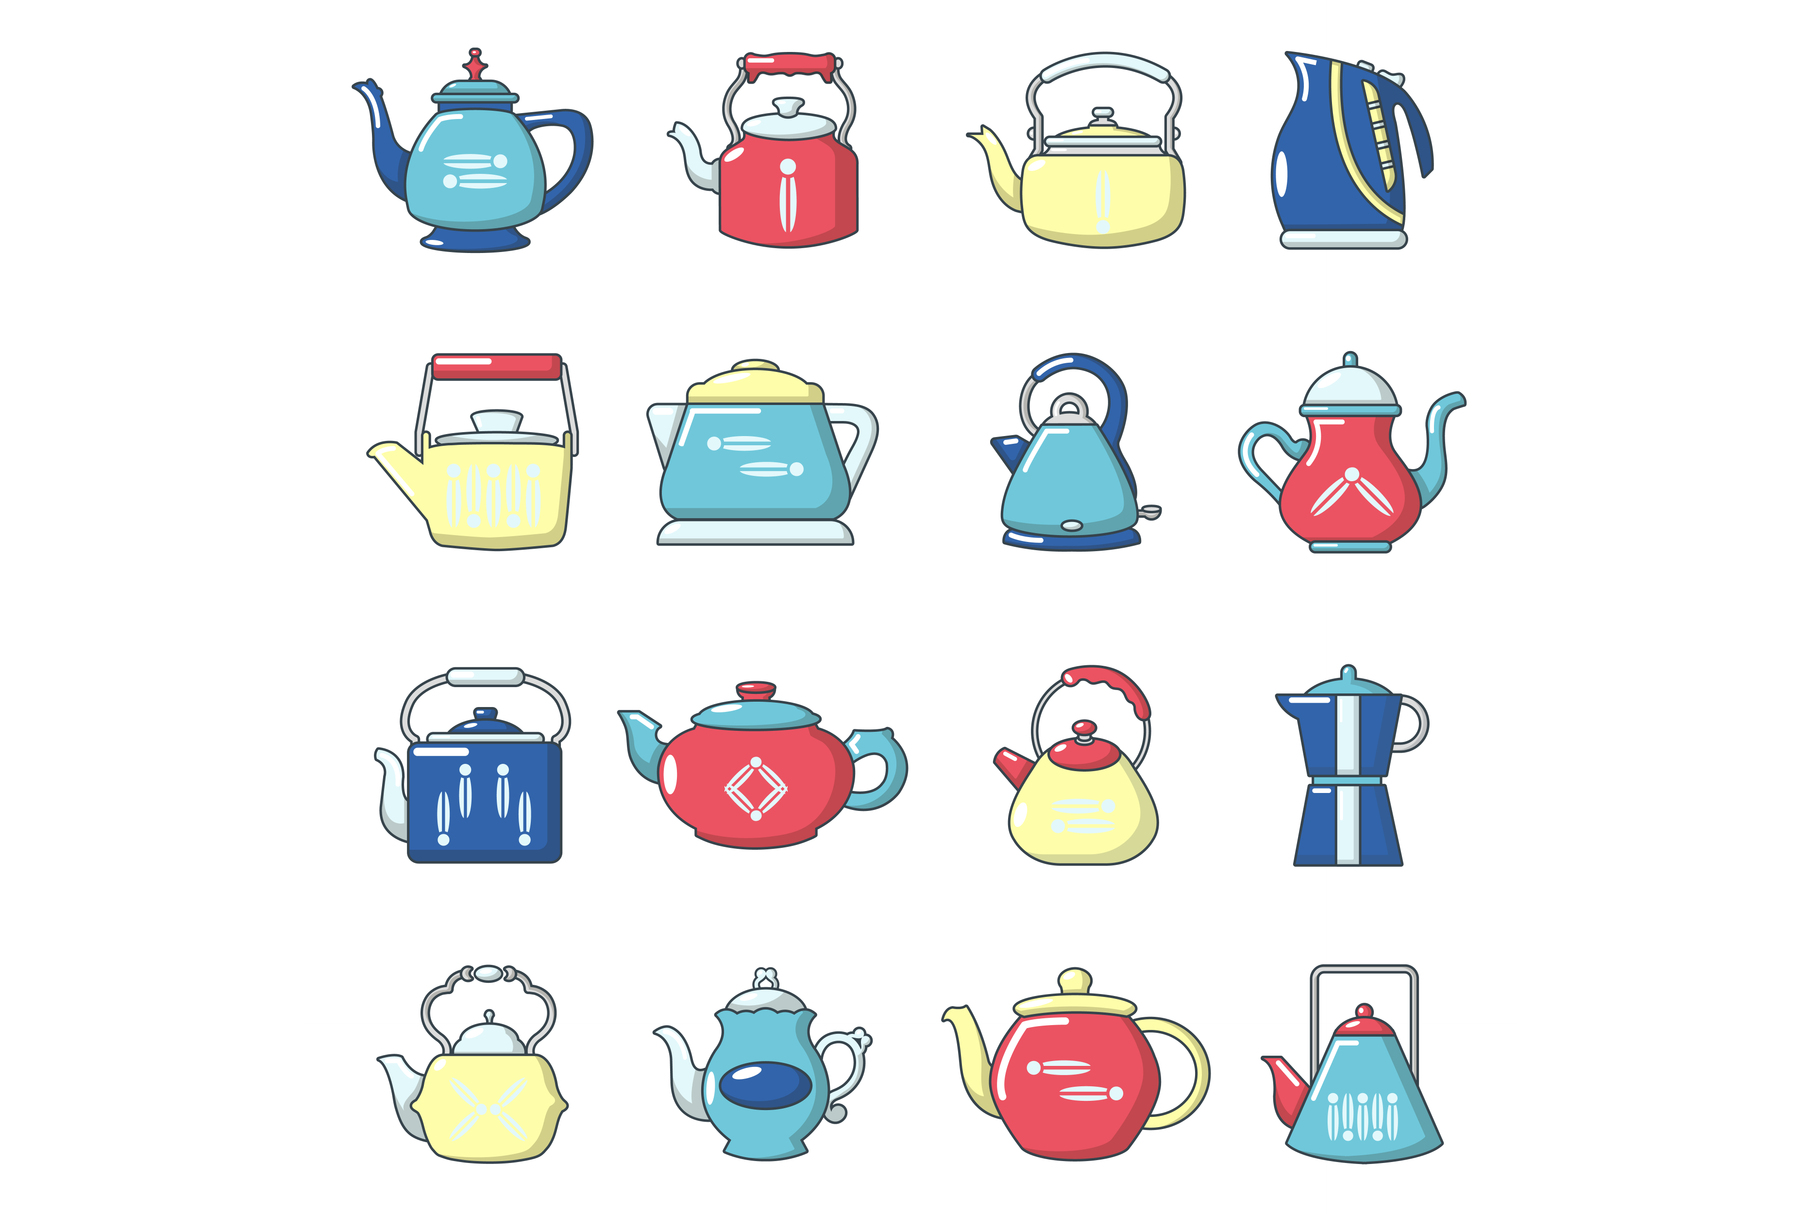 Teapot icons set, cartoon style example image 1